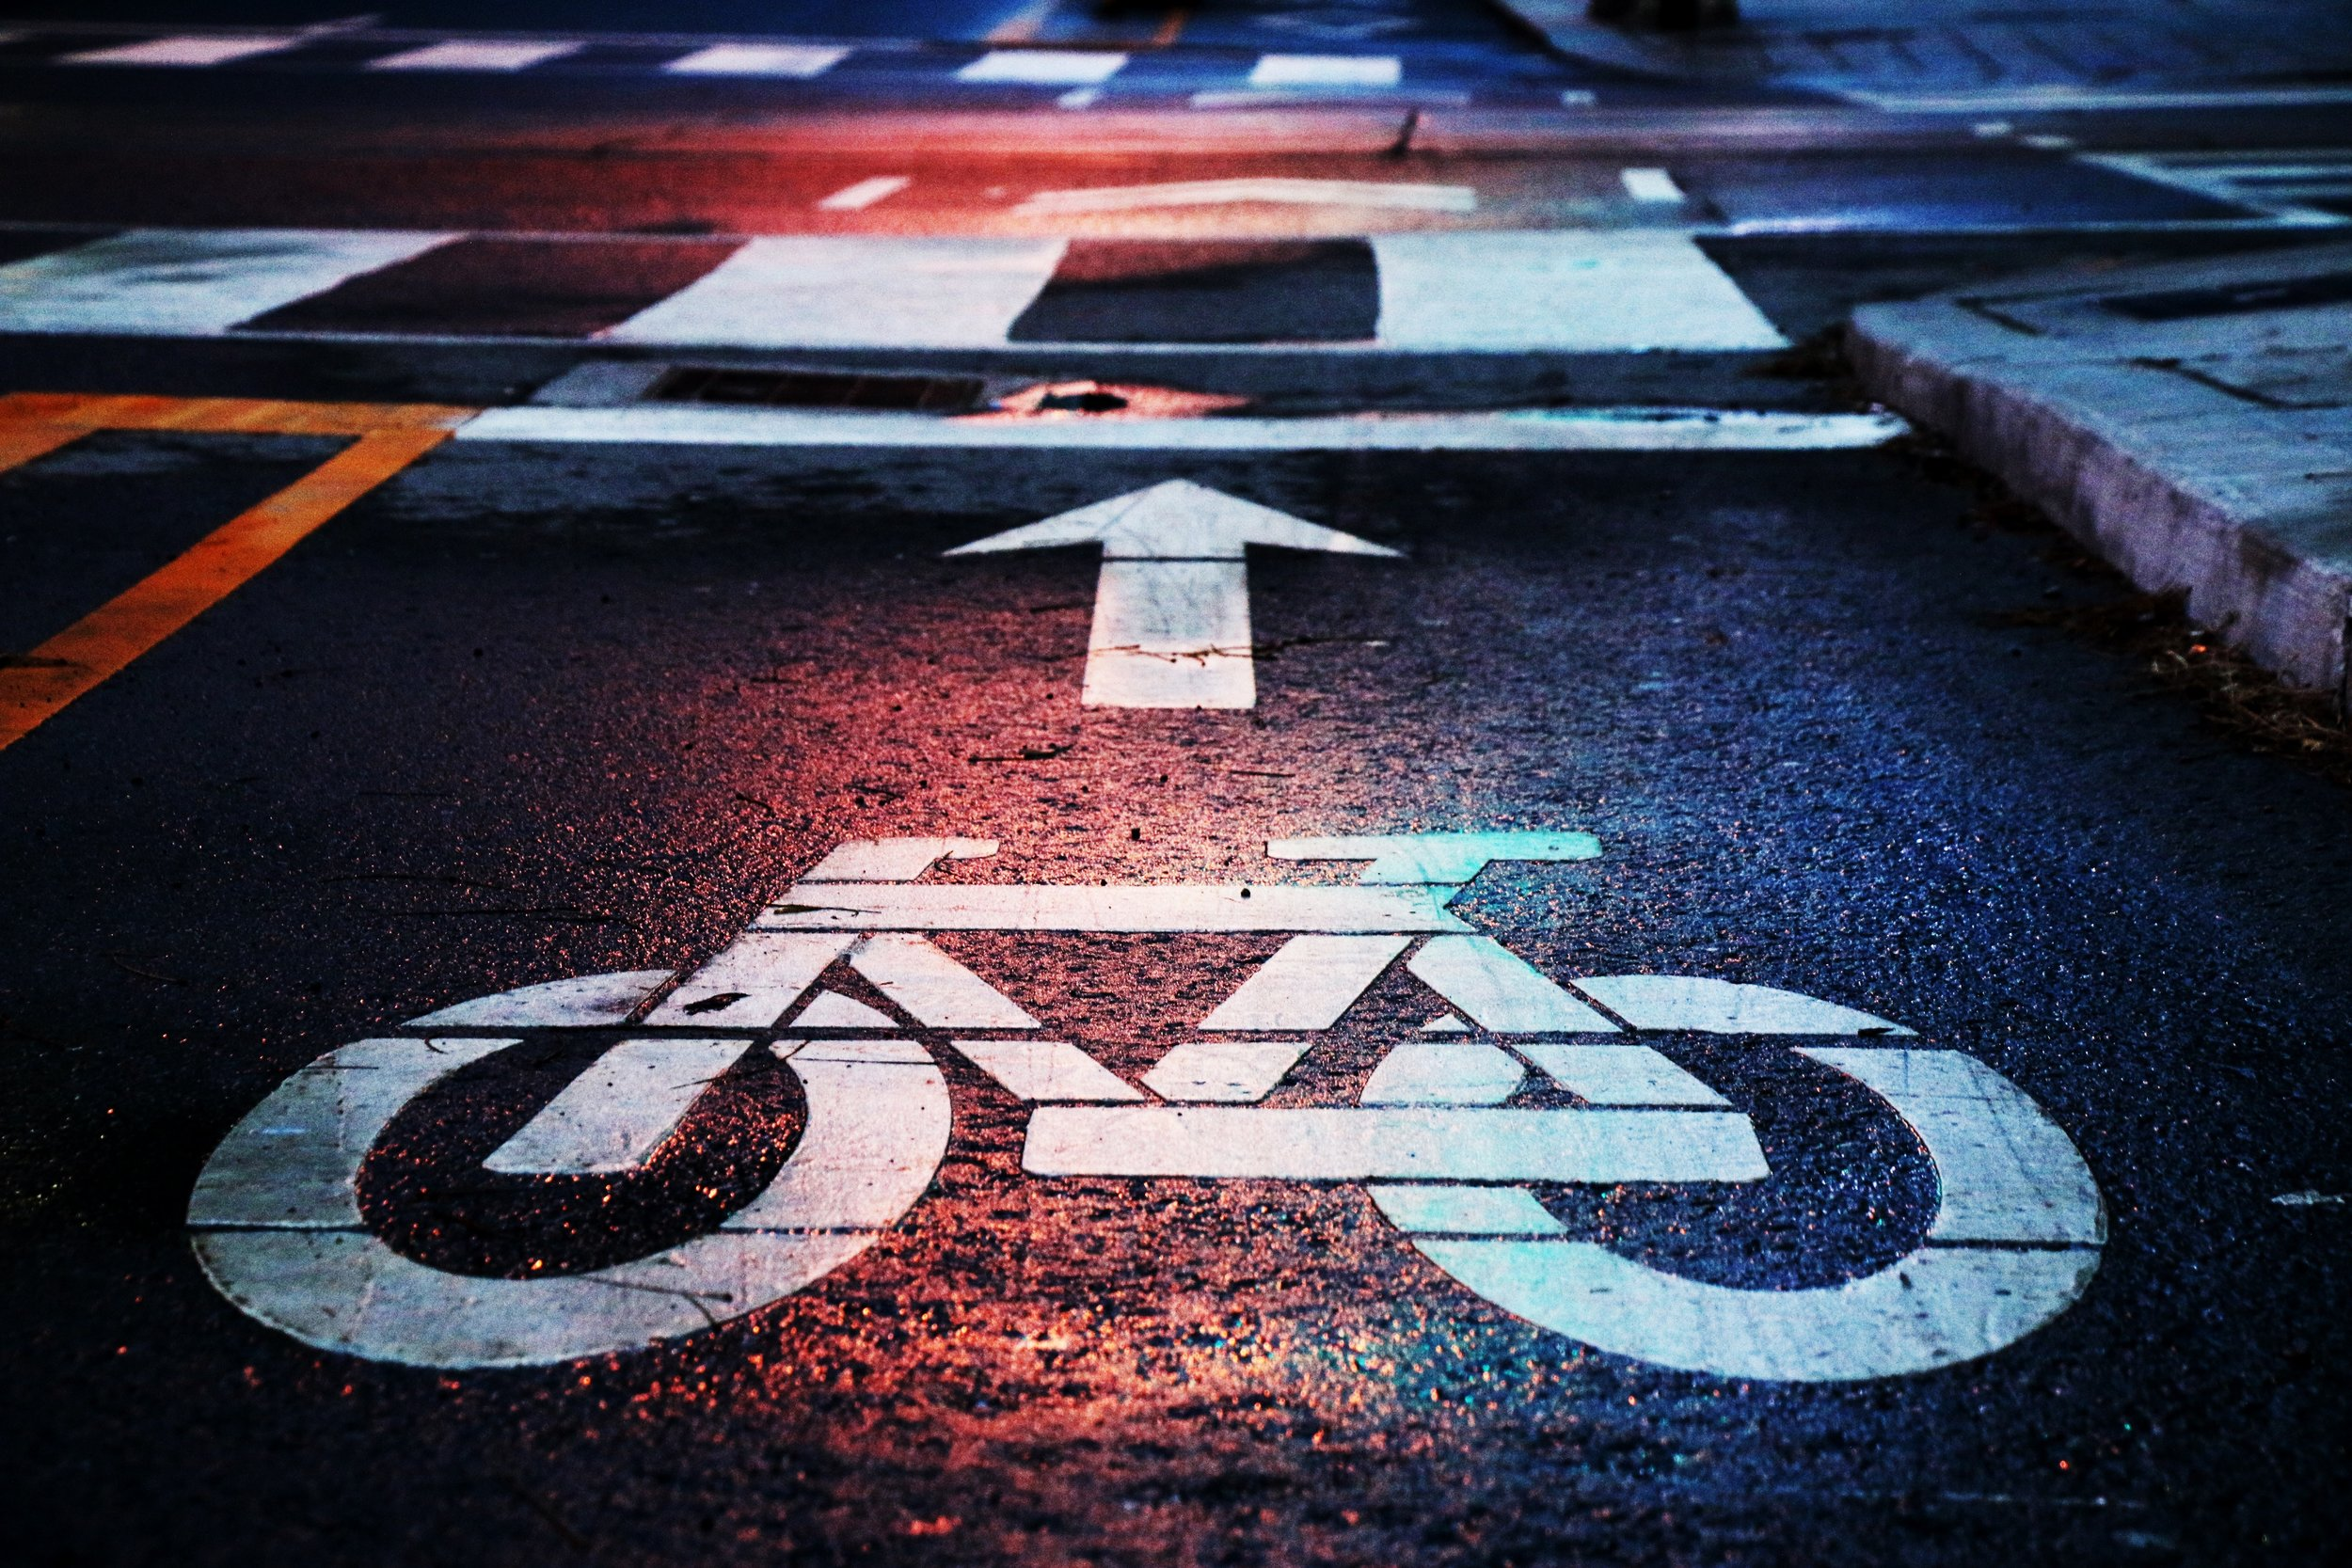 Road joy ahead - A new country means new rules; Please be advised that Belgium's 'priority from the right' is particular and dangerous!!